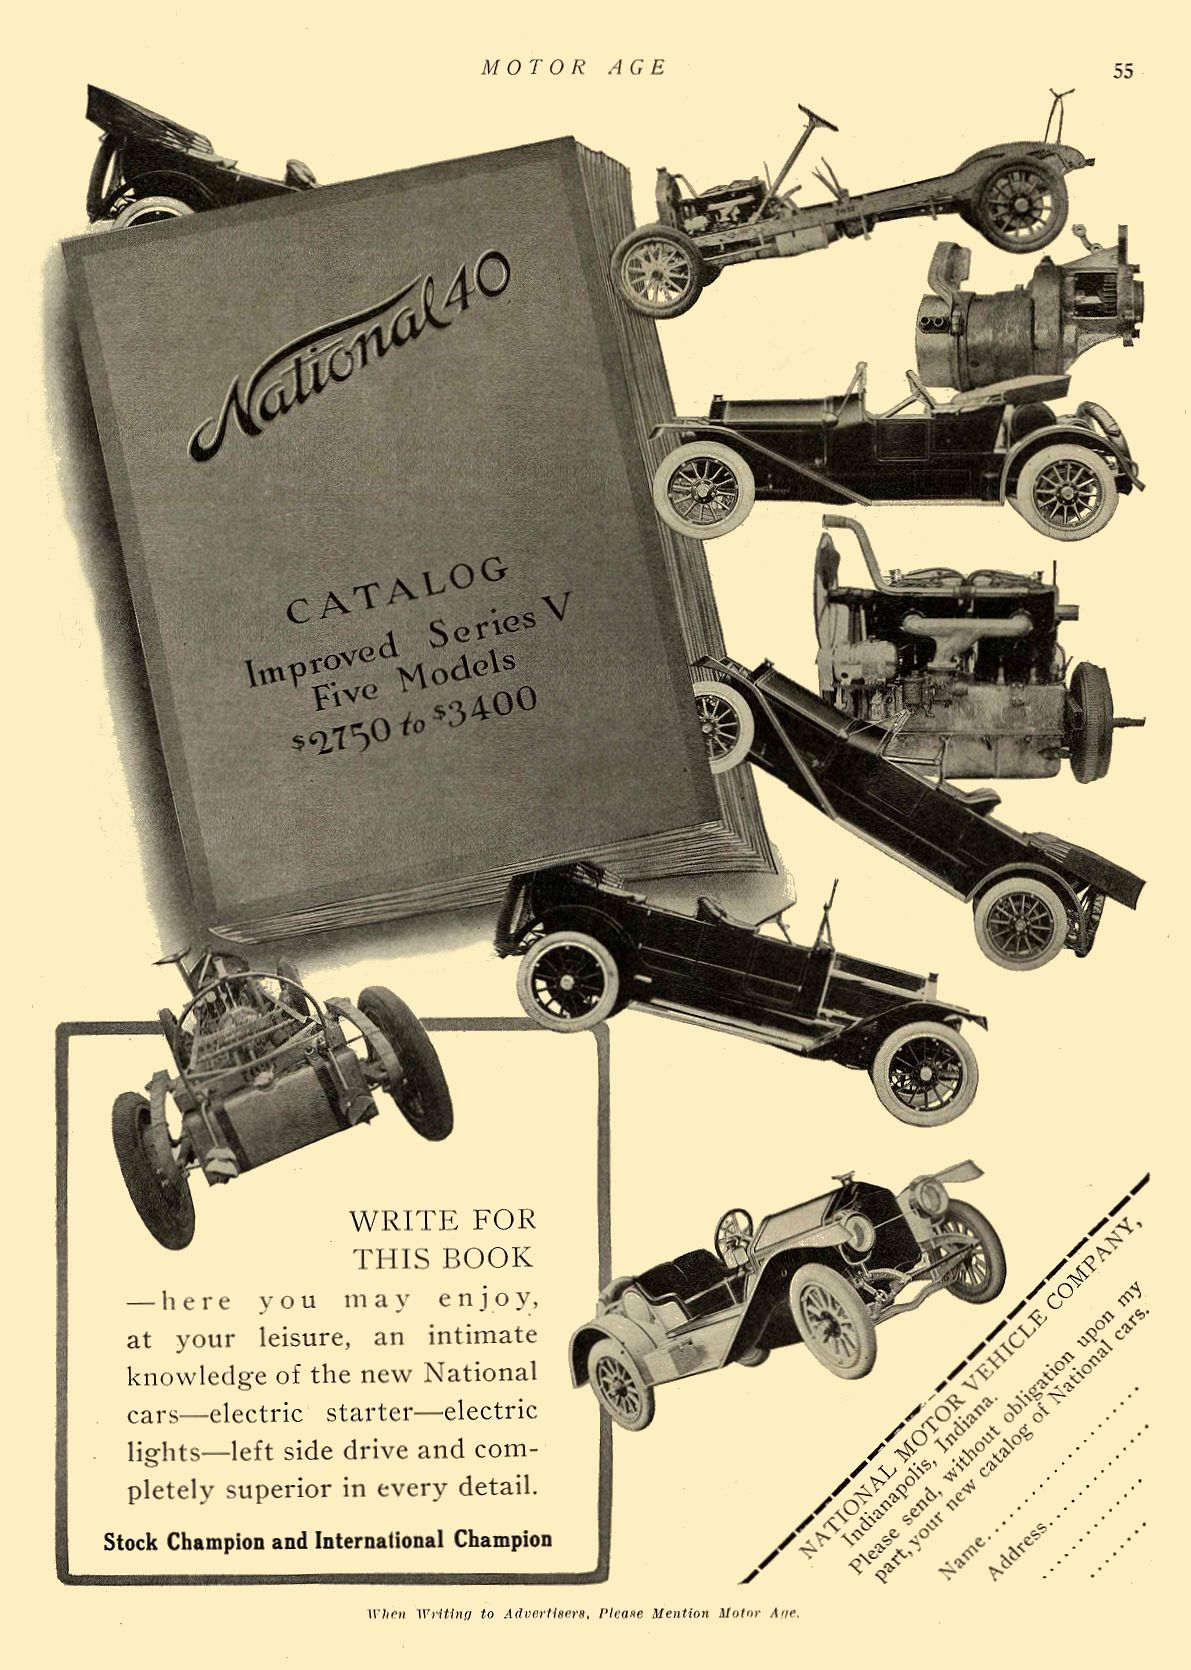 1913 2 20 NATIONAL WRITE FOR THIS BOOK NATIONAL MOTOR VEHICLE COMPANY Indianapolis, IND MOTOR AGE February 20, 1913 8.5″x12″ page 55